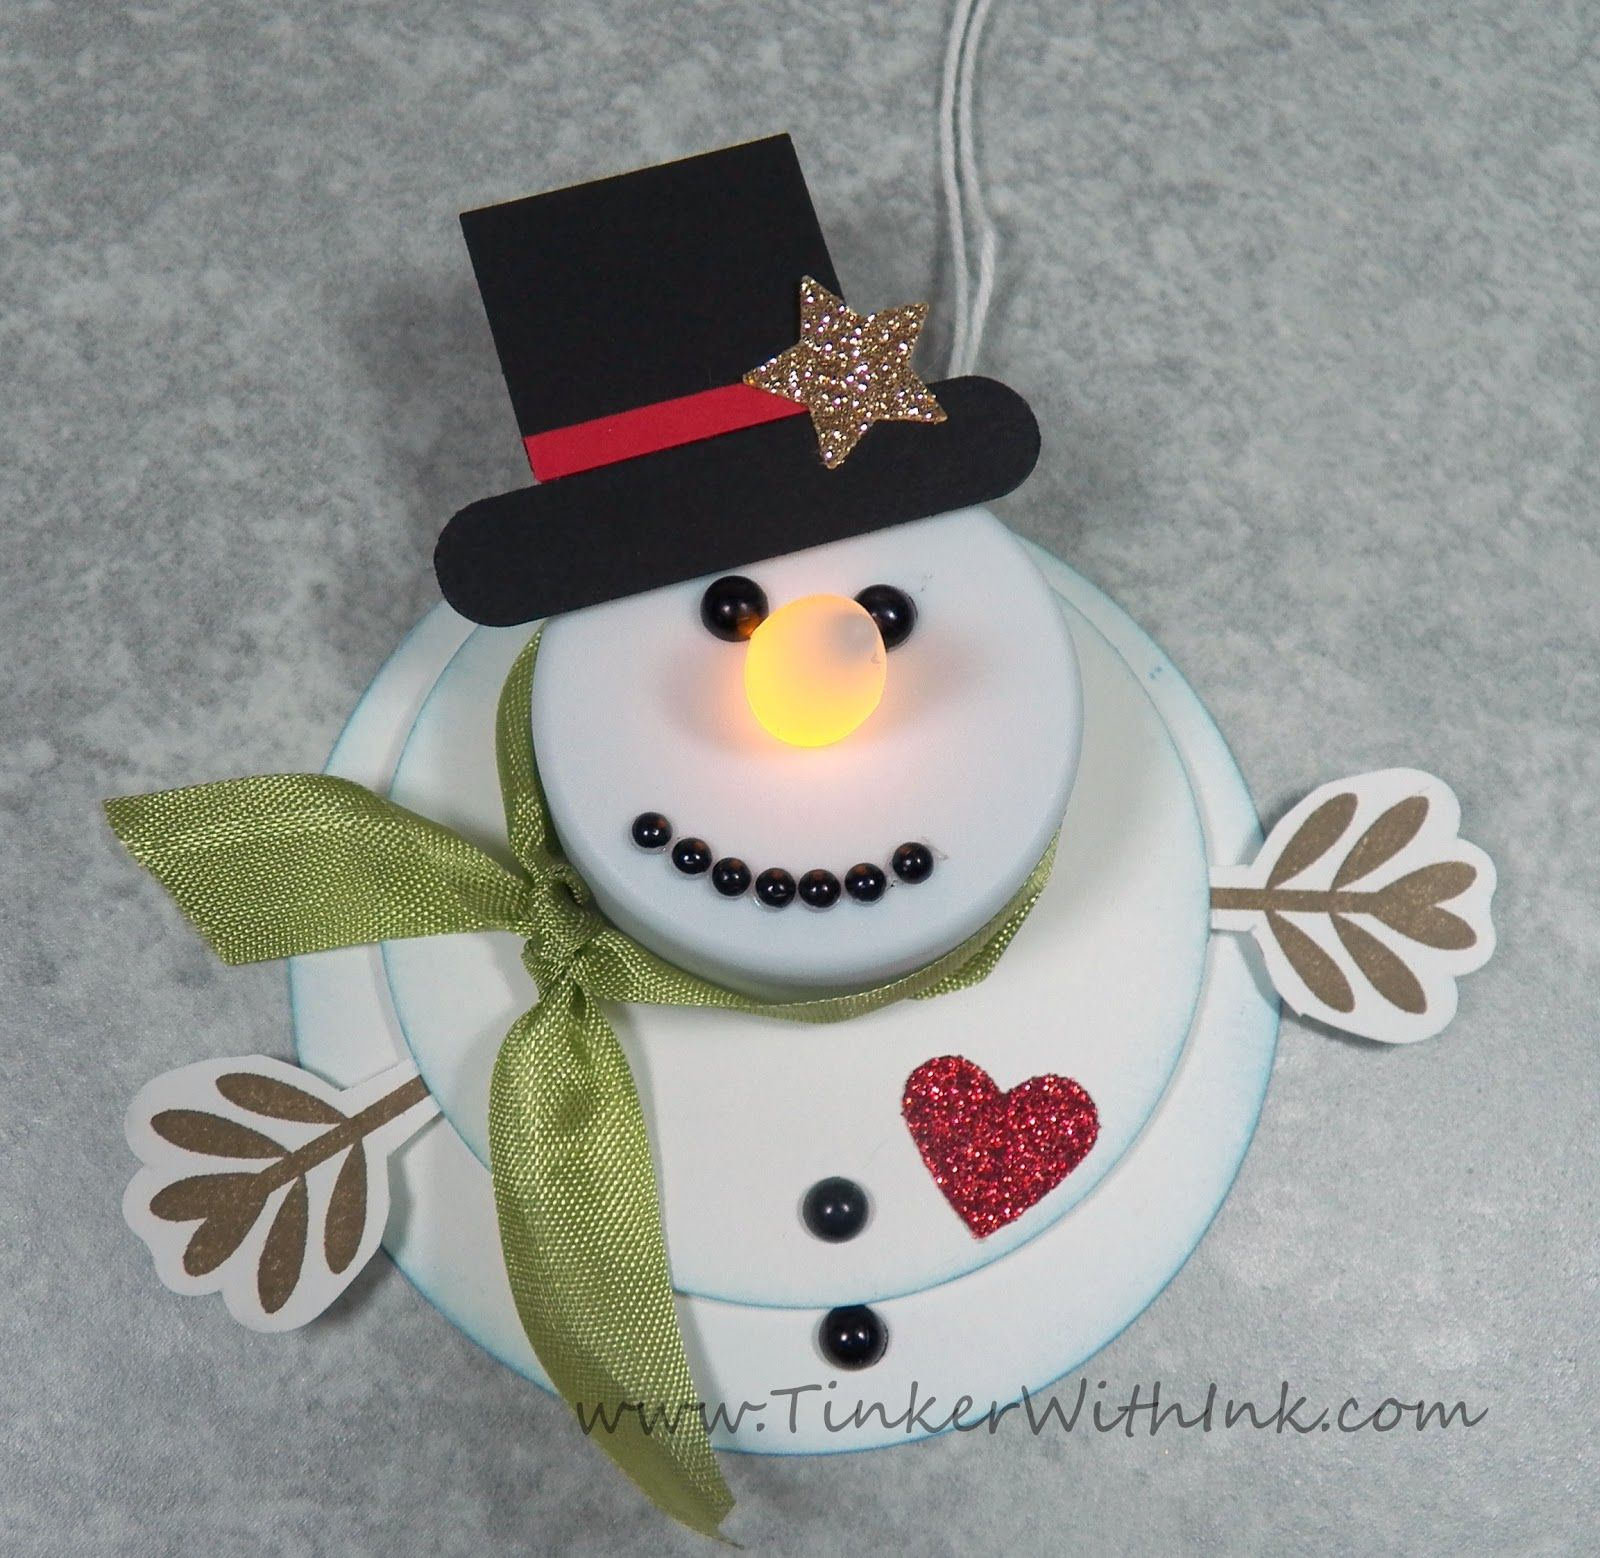 Stampin Up Tea Light Snowman   We Could Do One Of These For Each Place.  They Would Be Very Quick To Do. Put A Magnet On The Back And Itu0027s A Gift ...